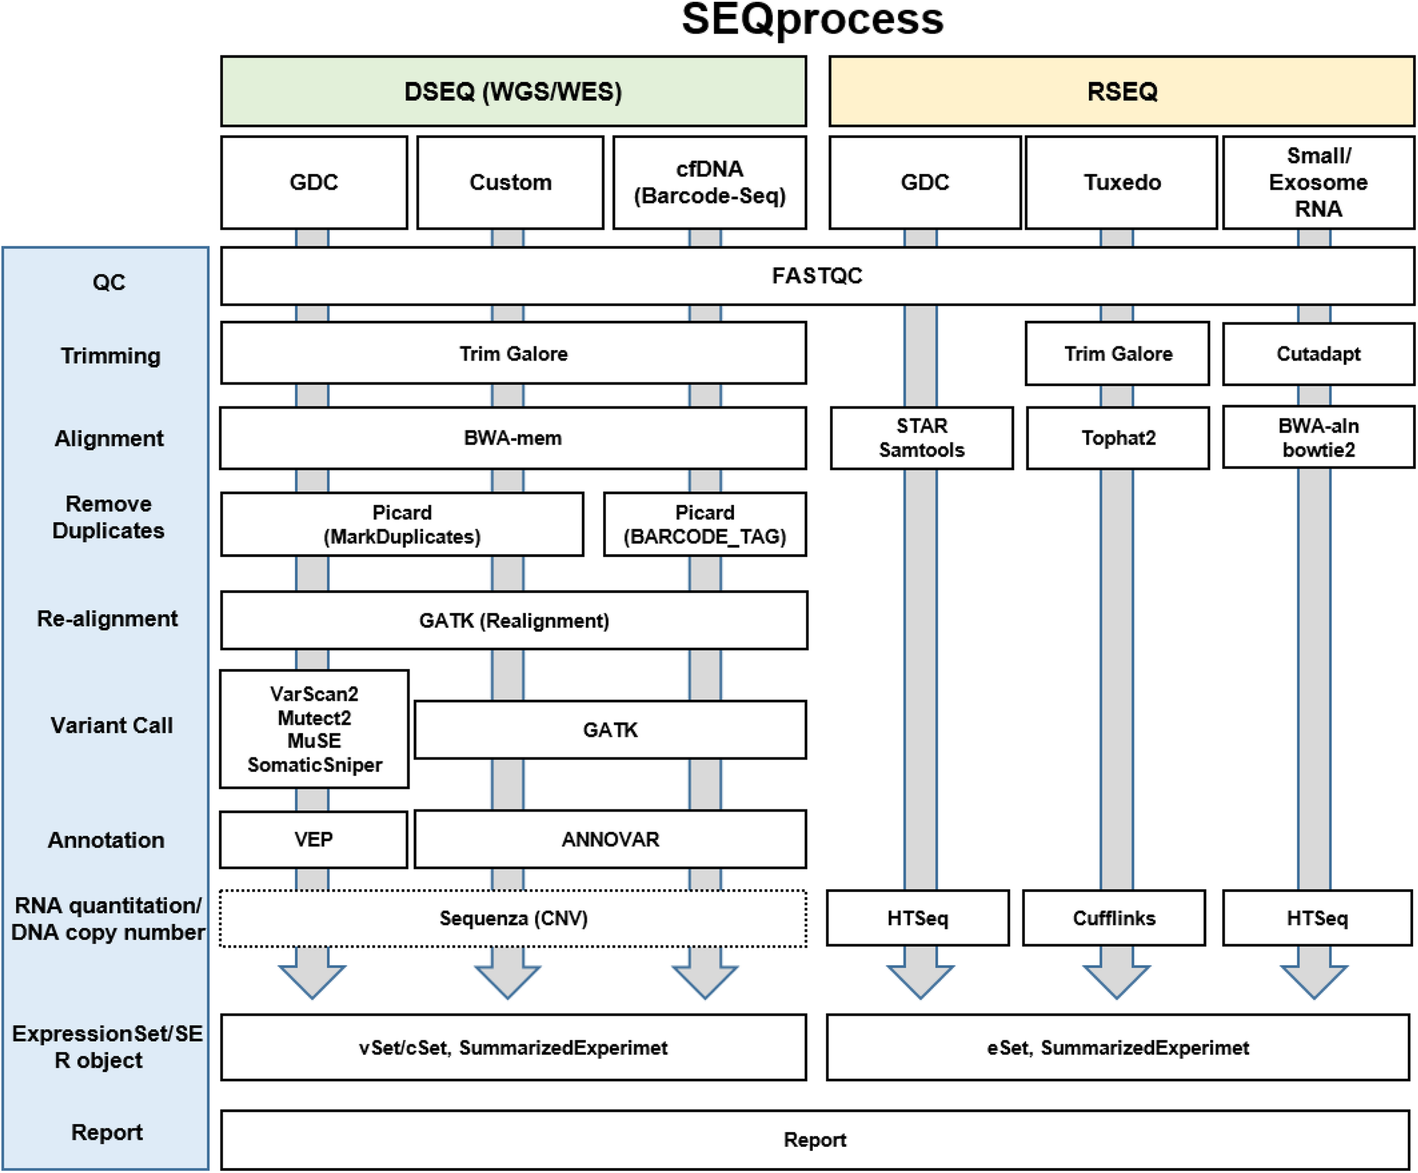 SEQprocess: a modularized and customizable pipeline framework for